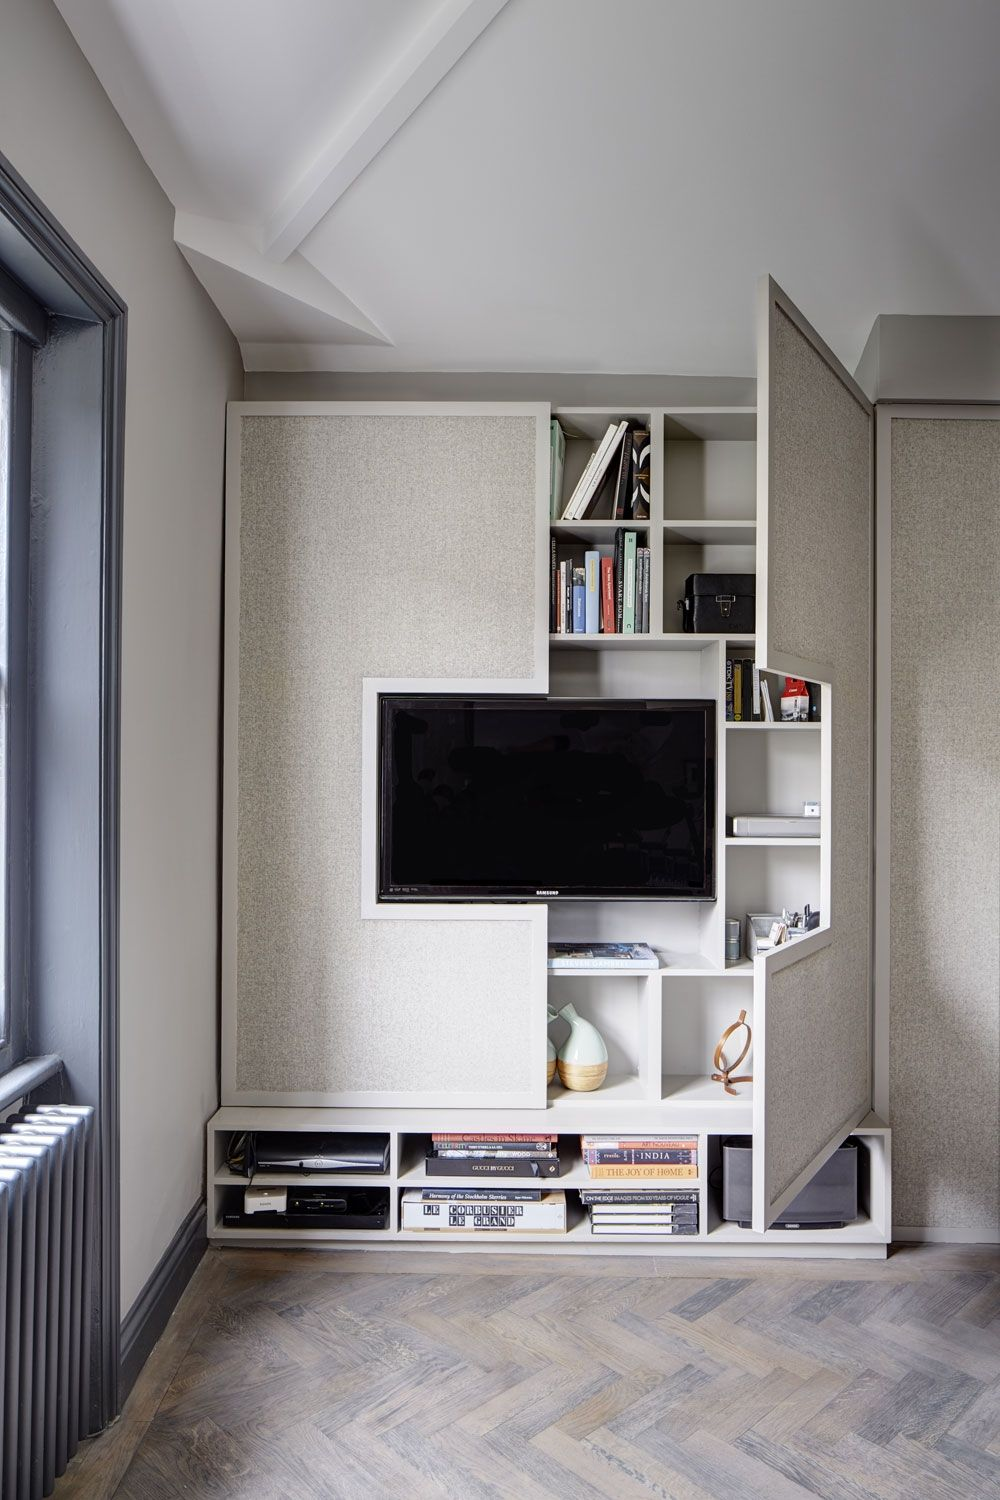 High style low budget in this square foot english flat loft apartment decoratingsmall also best interieur images on pinterest apartments living room and rh